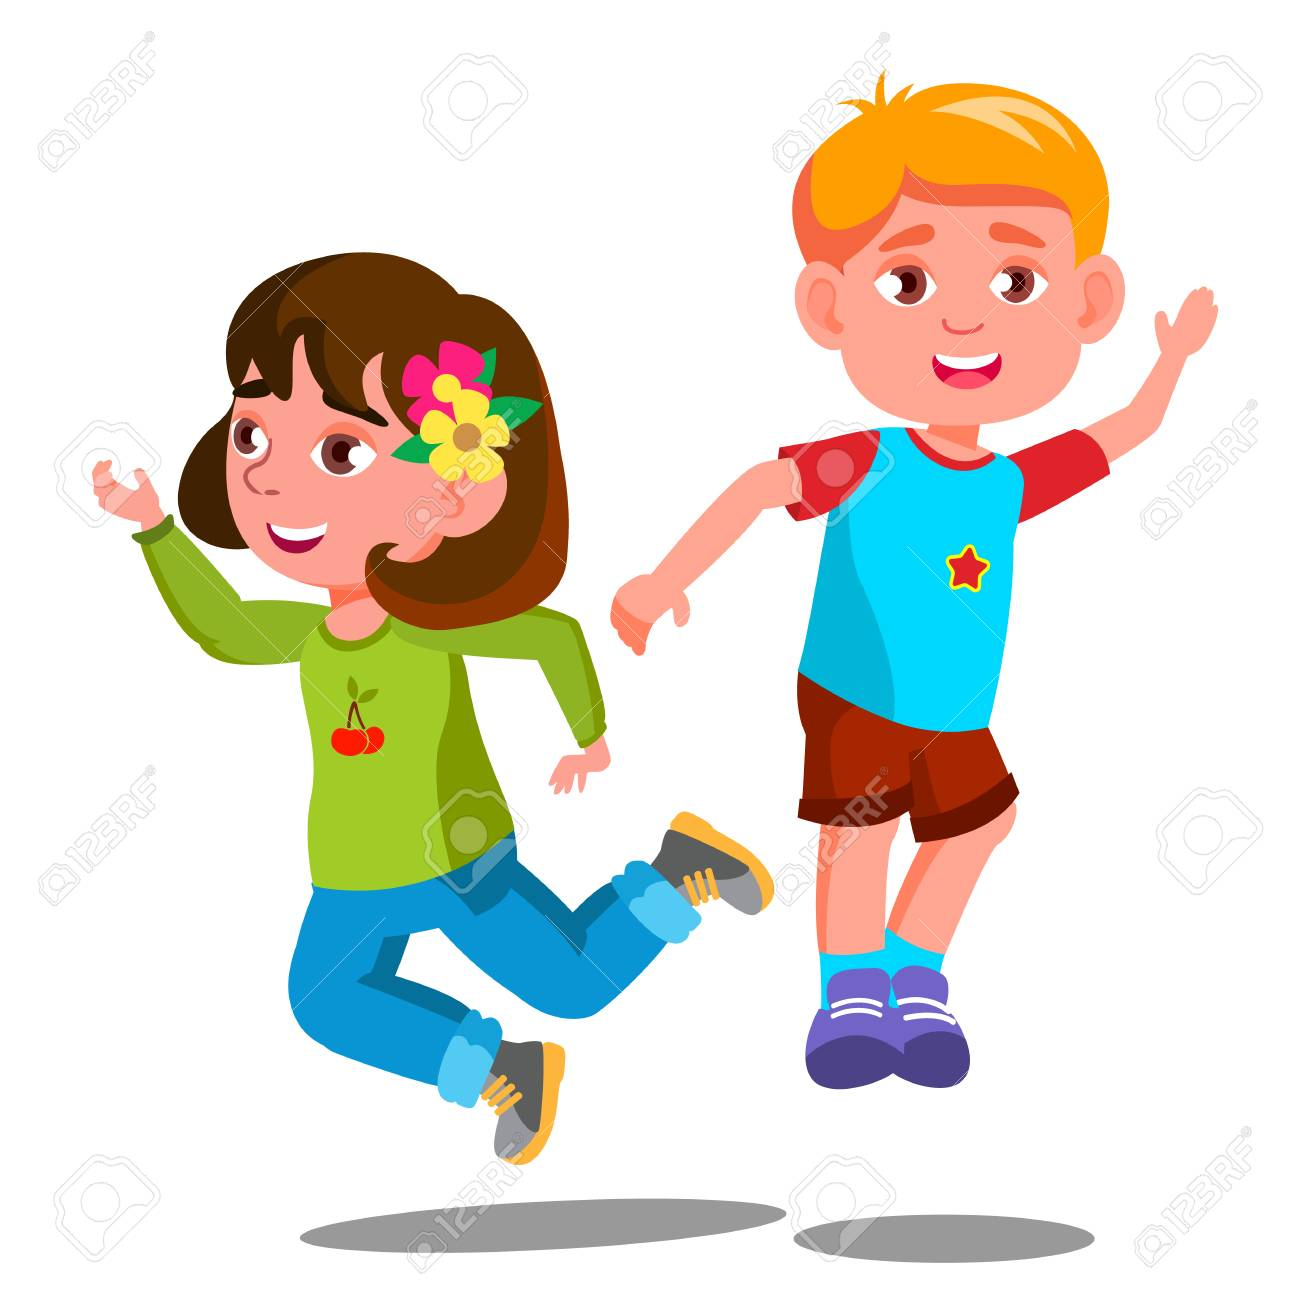 Group Of Happy Children Are Jumping Together Vector. Illustration - 126552779